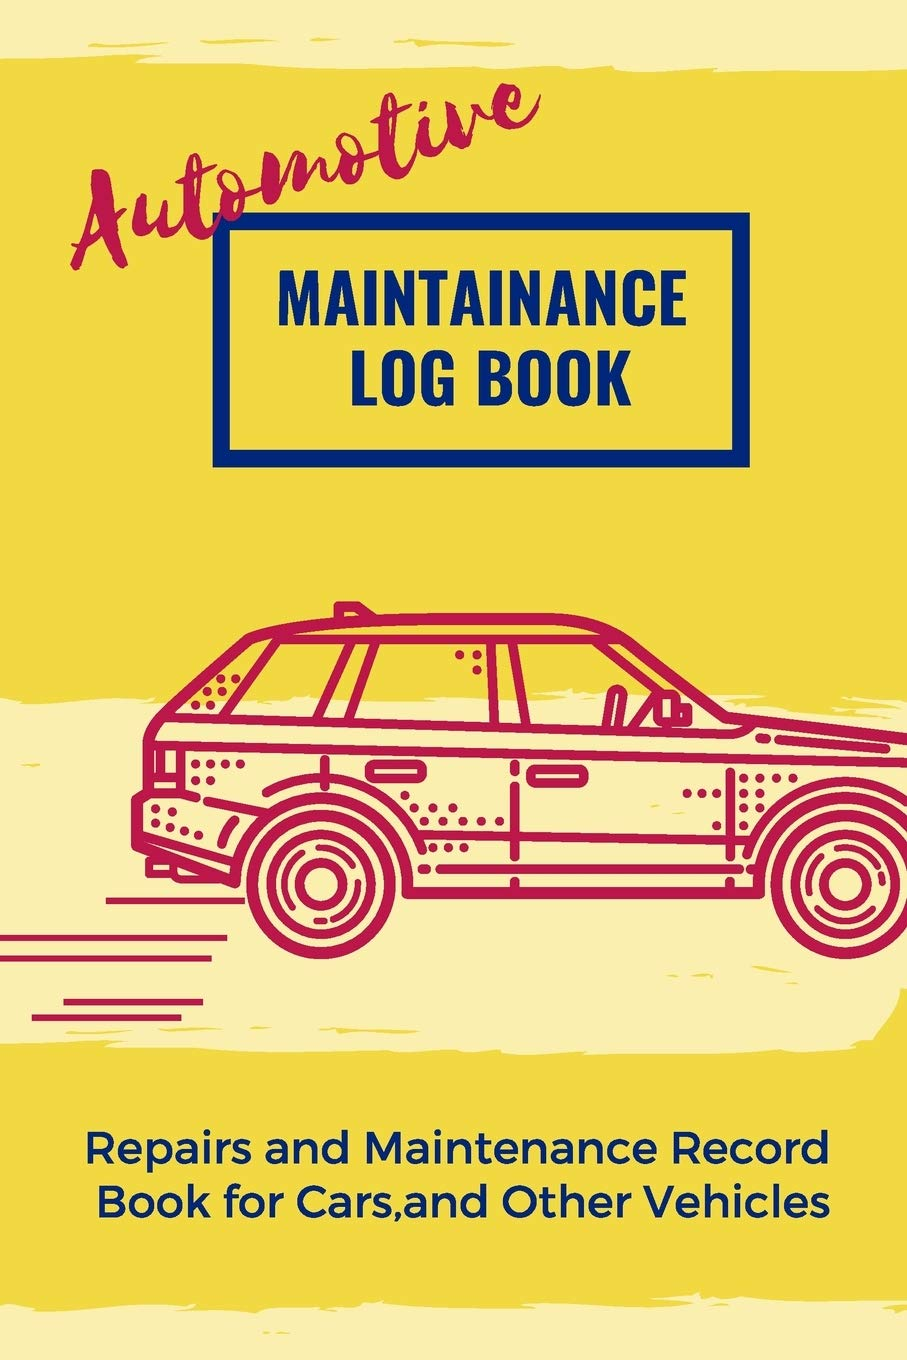 Automotive Maintenance Log Book Repairs And Maintenance Record Book For Cars Trucks Motorcycles And Other Vehicles With Parts List And Mileage Log Book Vehicle Log Book 6 X9 100 Pages